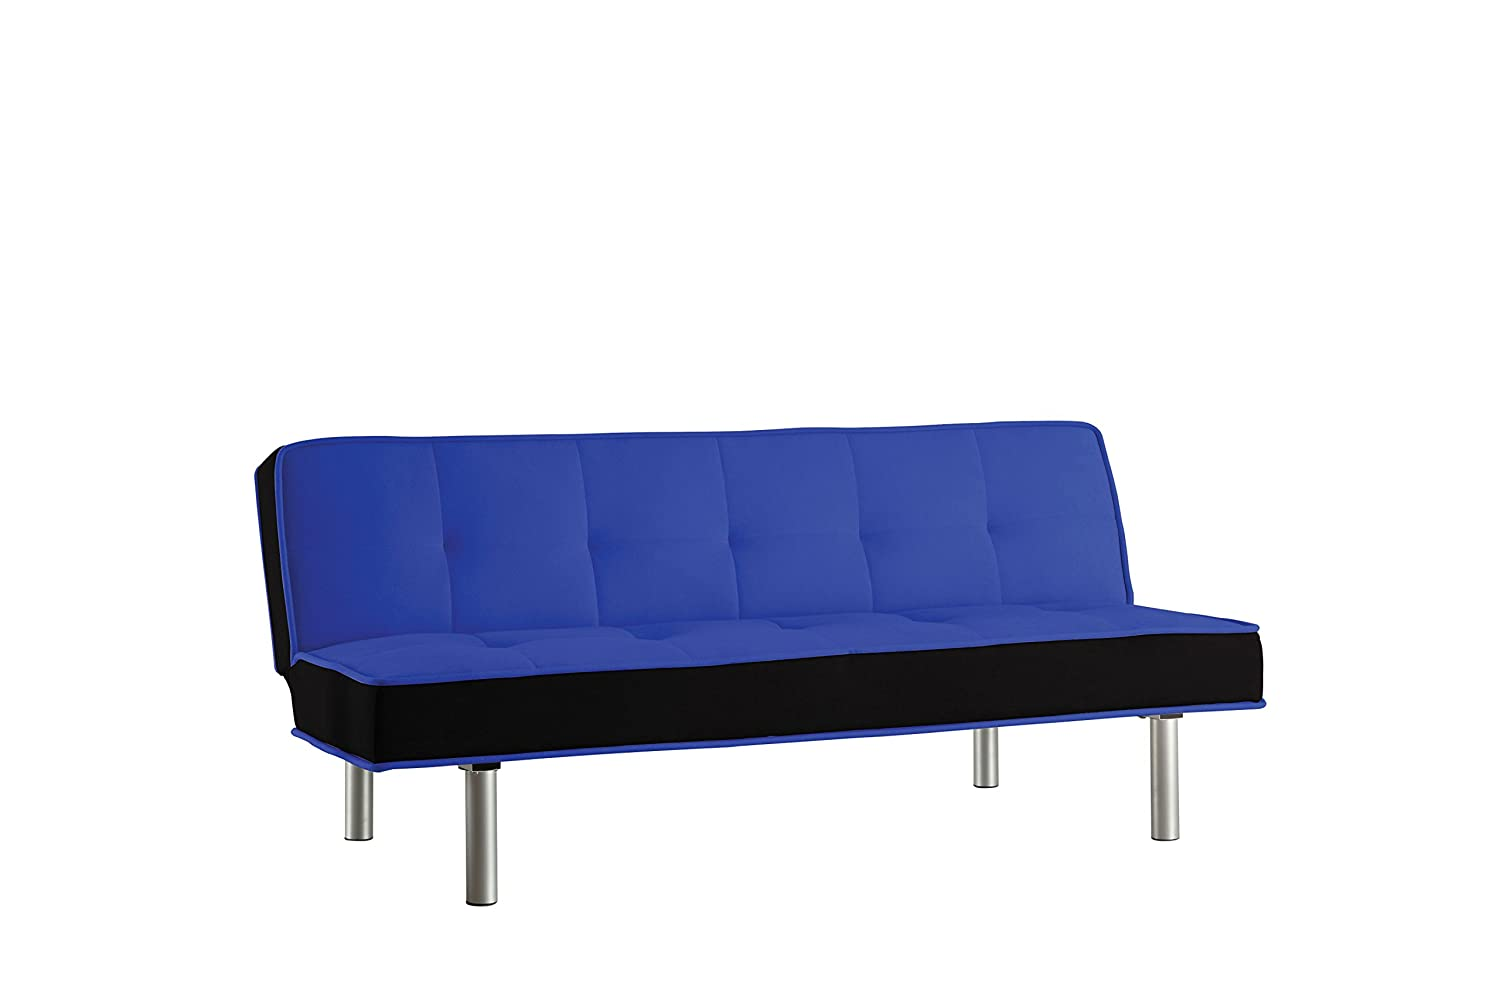 ACME Hailey Adjustable Sofa, Blue and Black Flannel Acme Furniture 57136